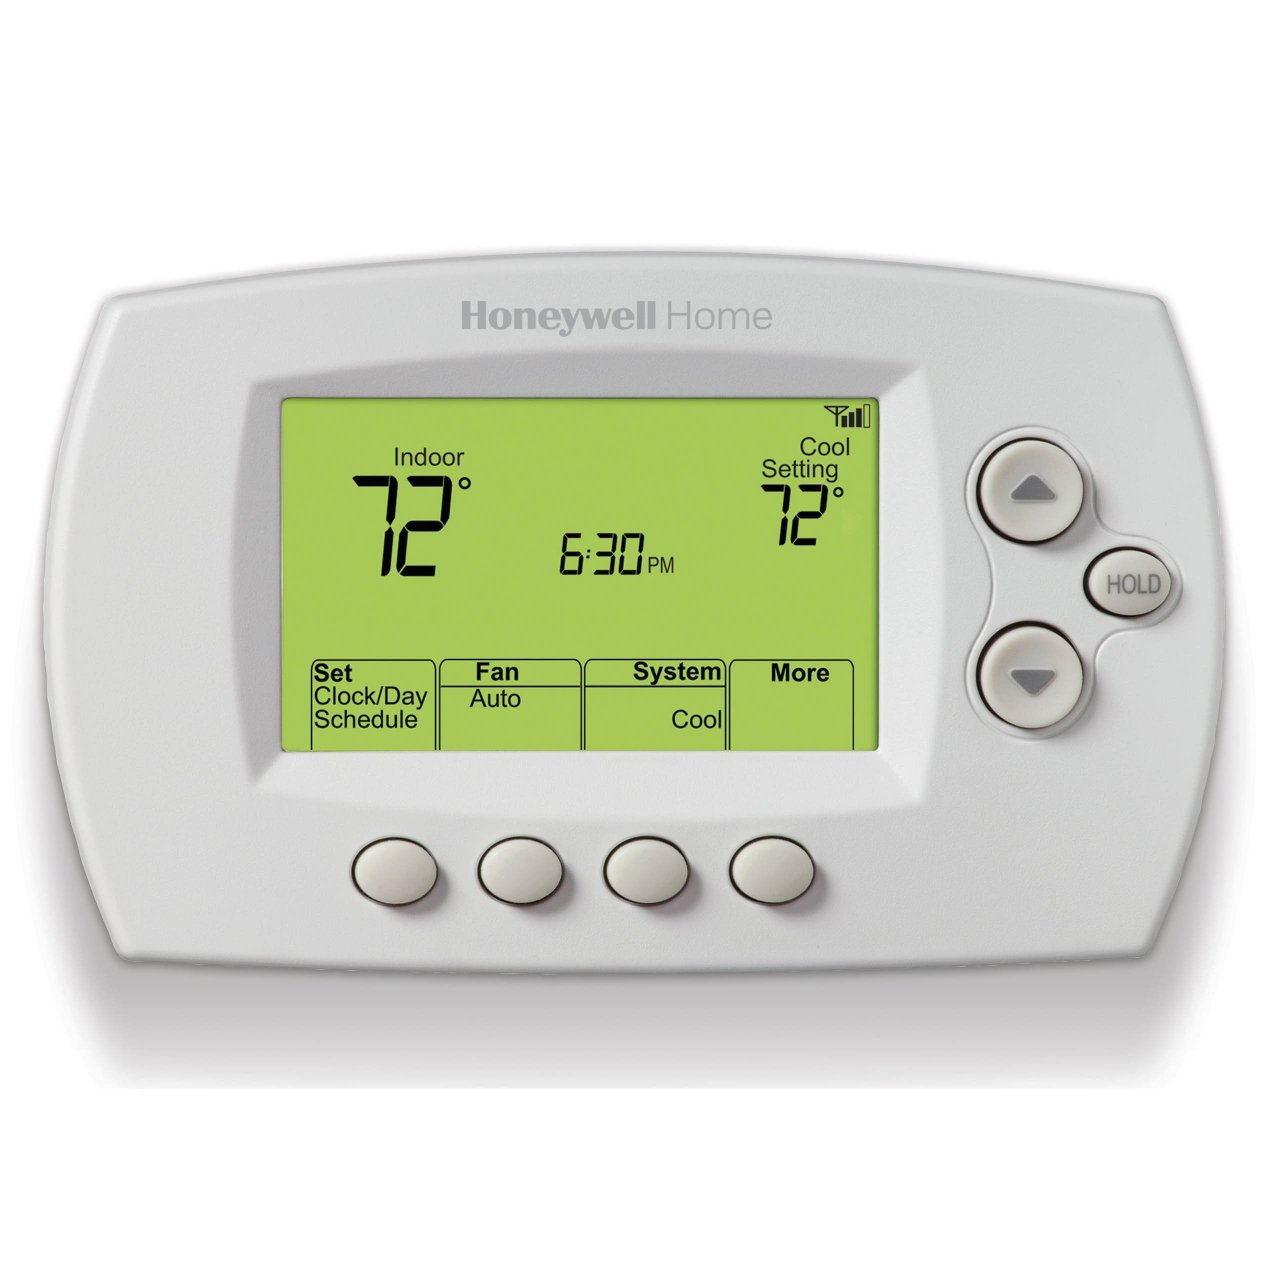 White 7 Day Program Thermostat Fahrenheit Honeywell Home